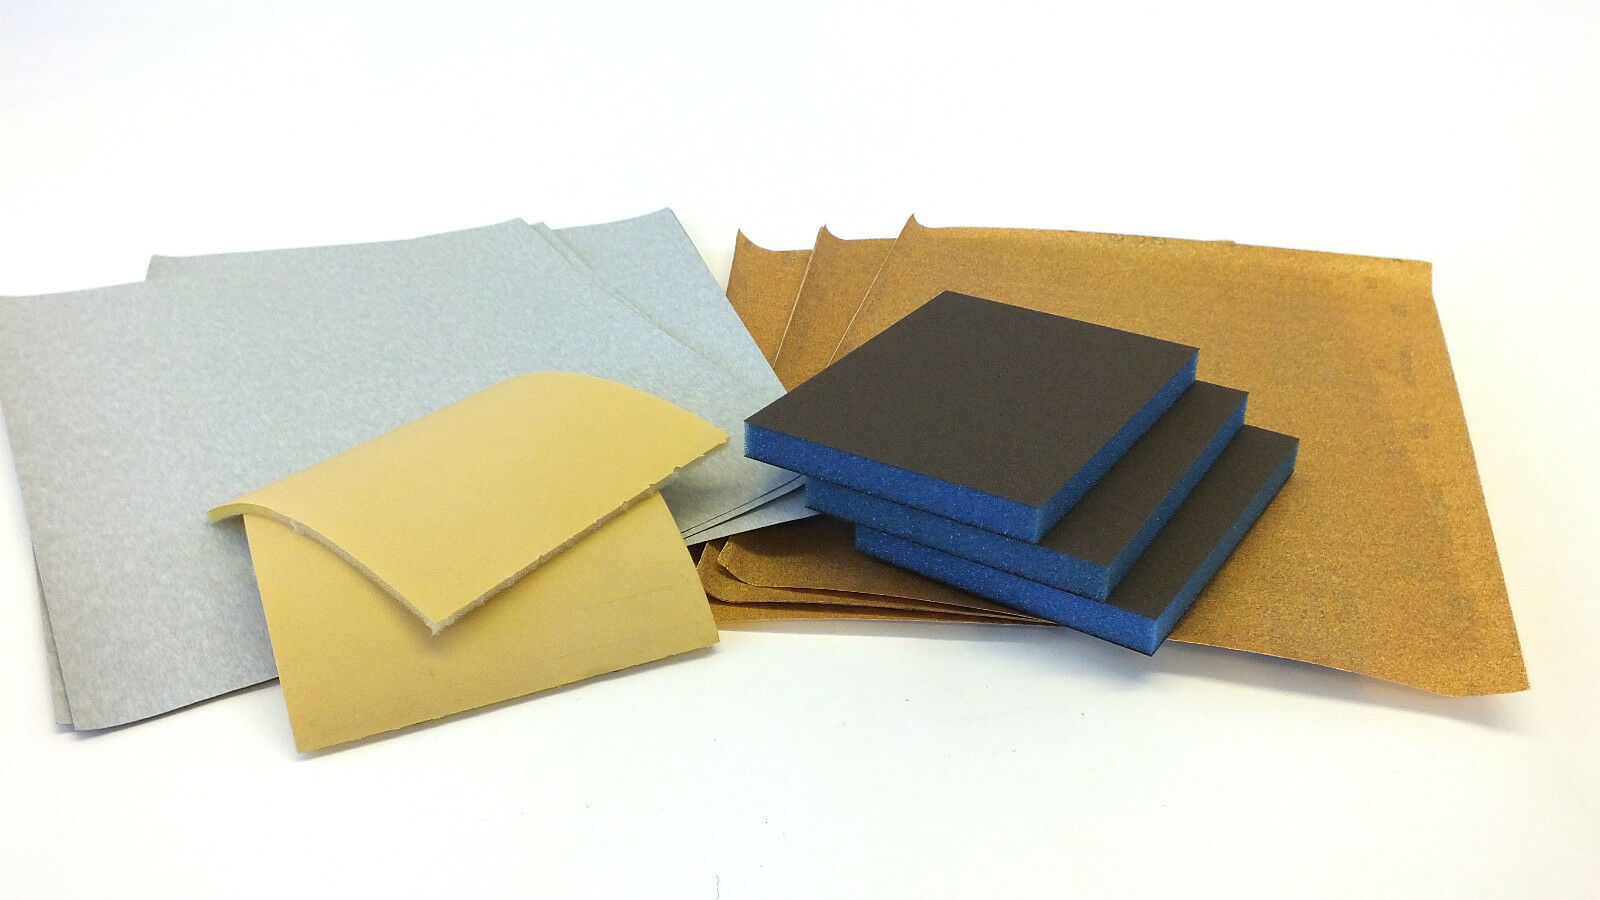 Single or Double sided sanding pads, Trimite & garnet sanding paper - All grits